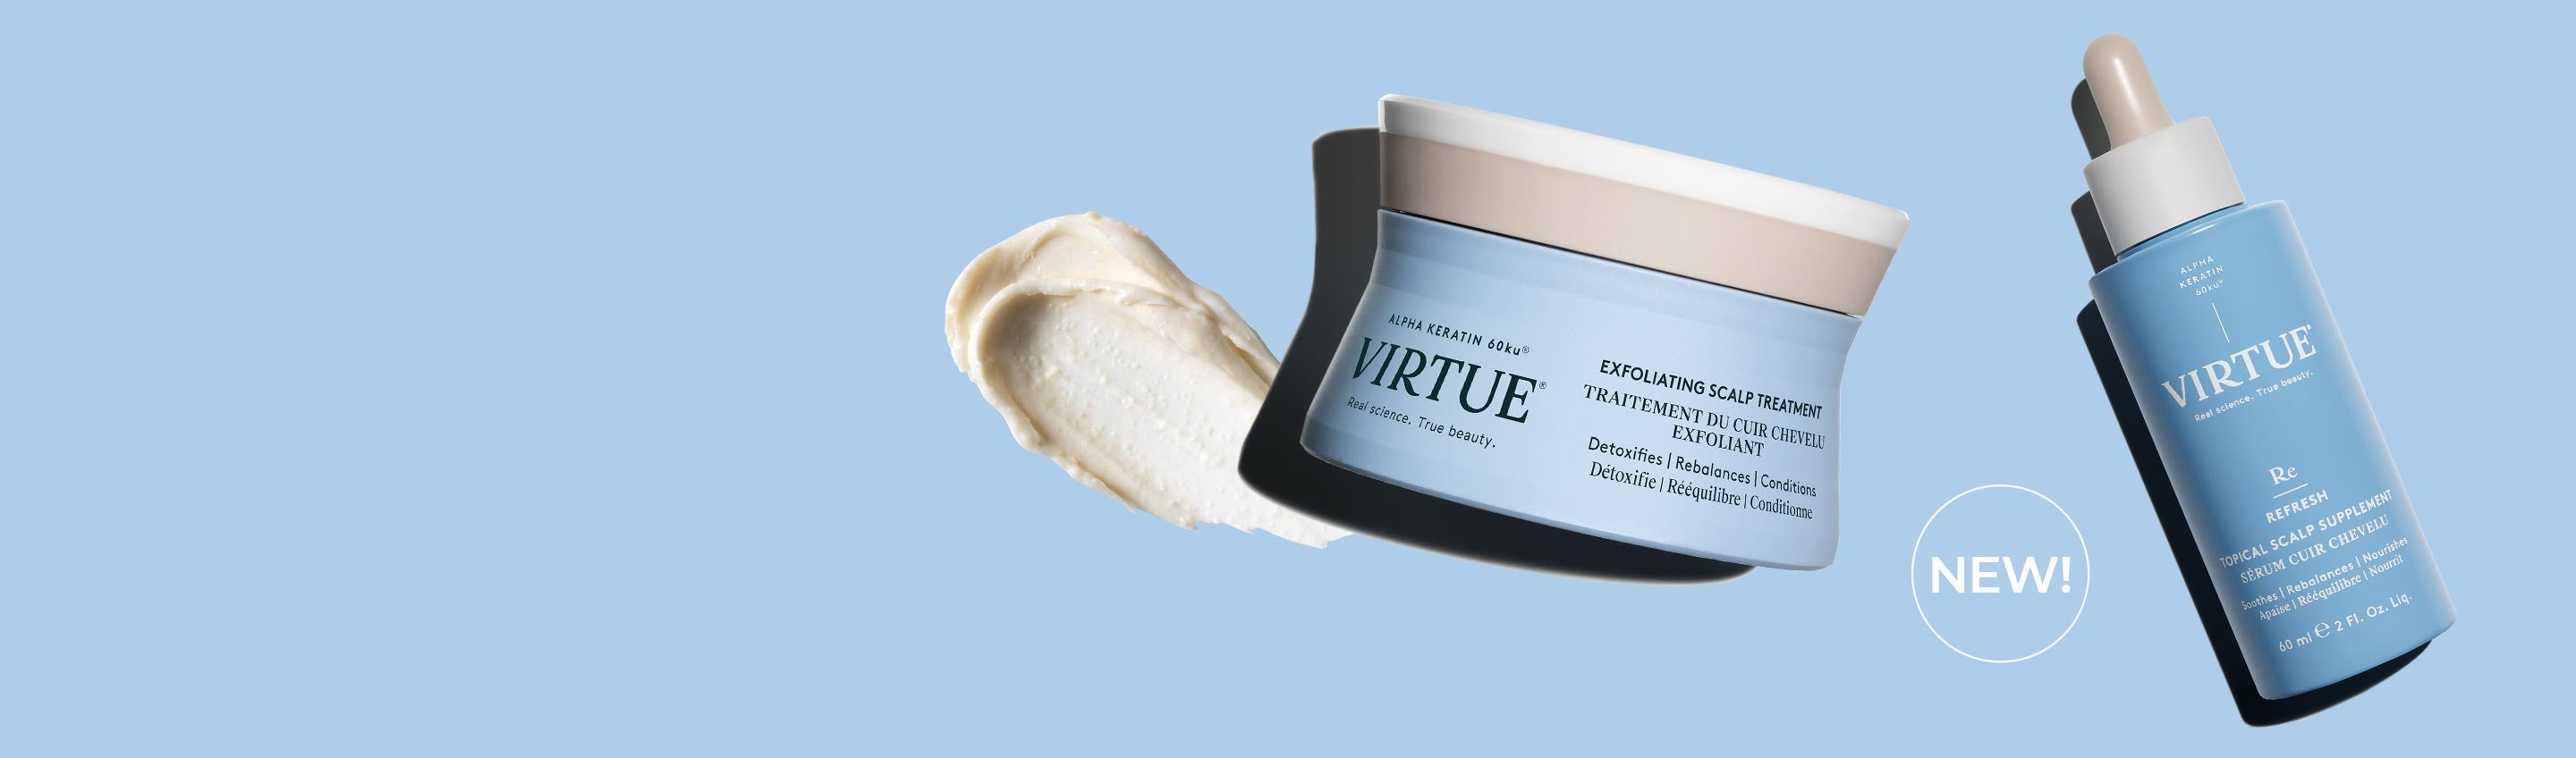 Virtue Exfoliating Scalp Scrub Treatment and Topical Treatment with the word NEW on a blue background